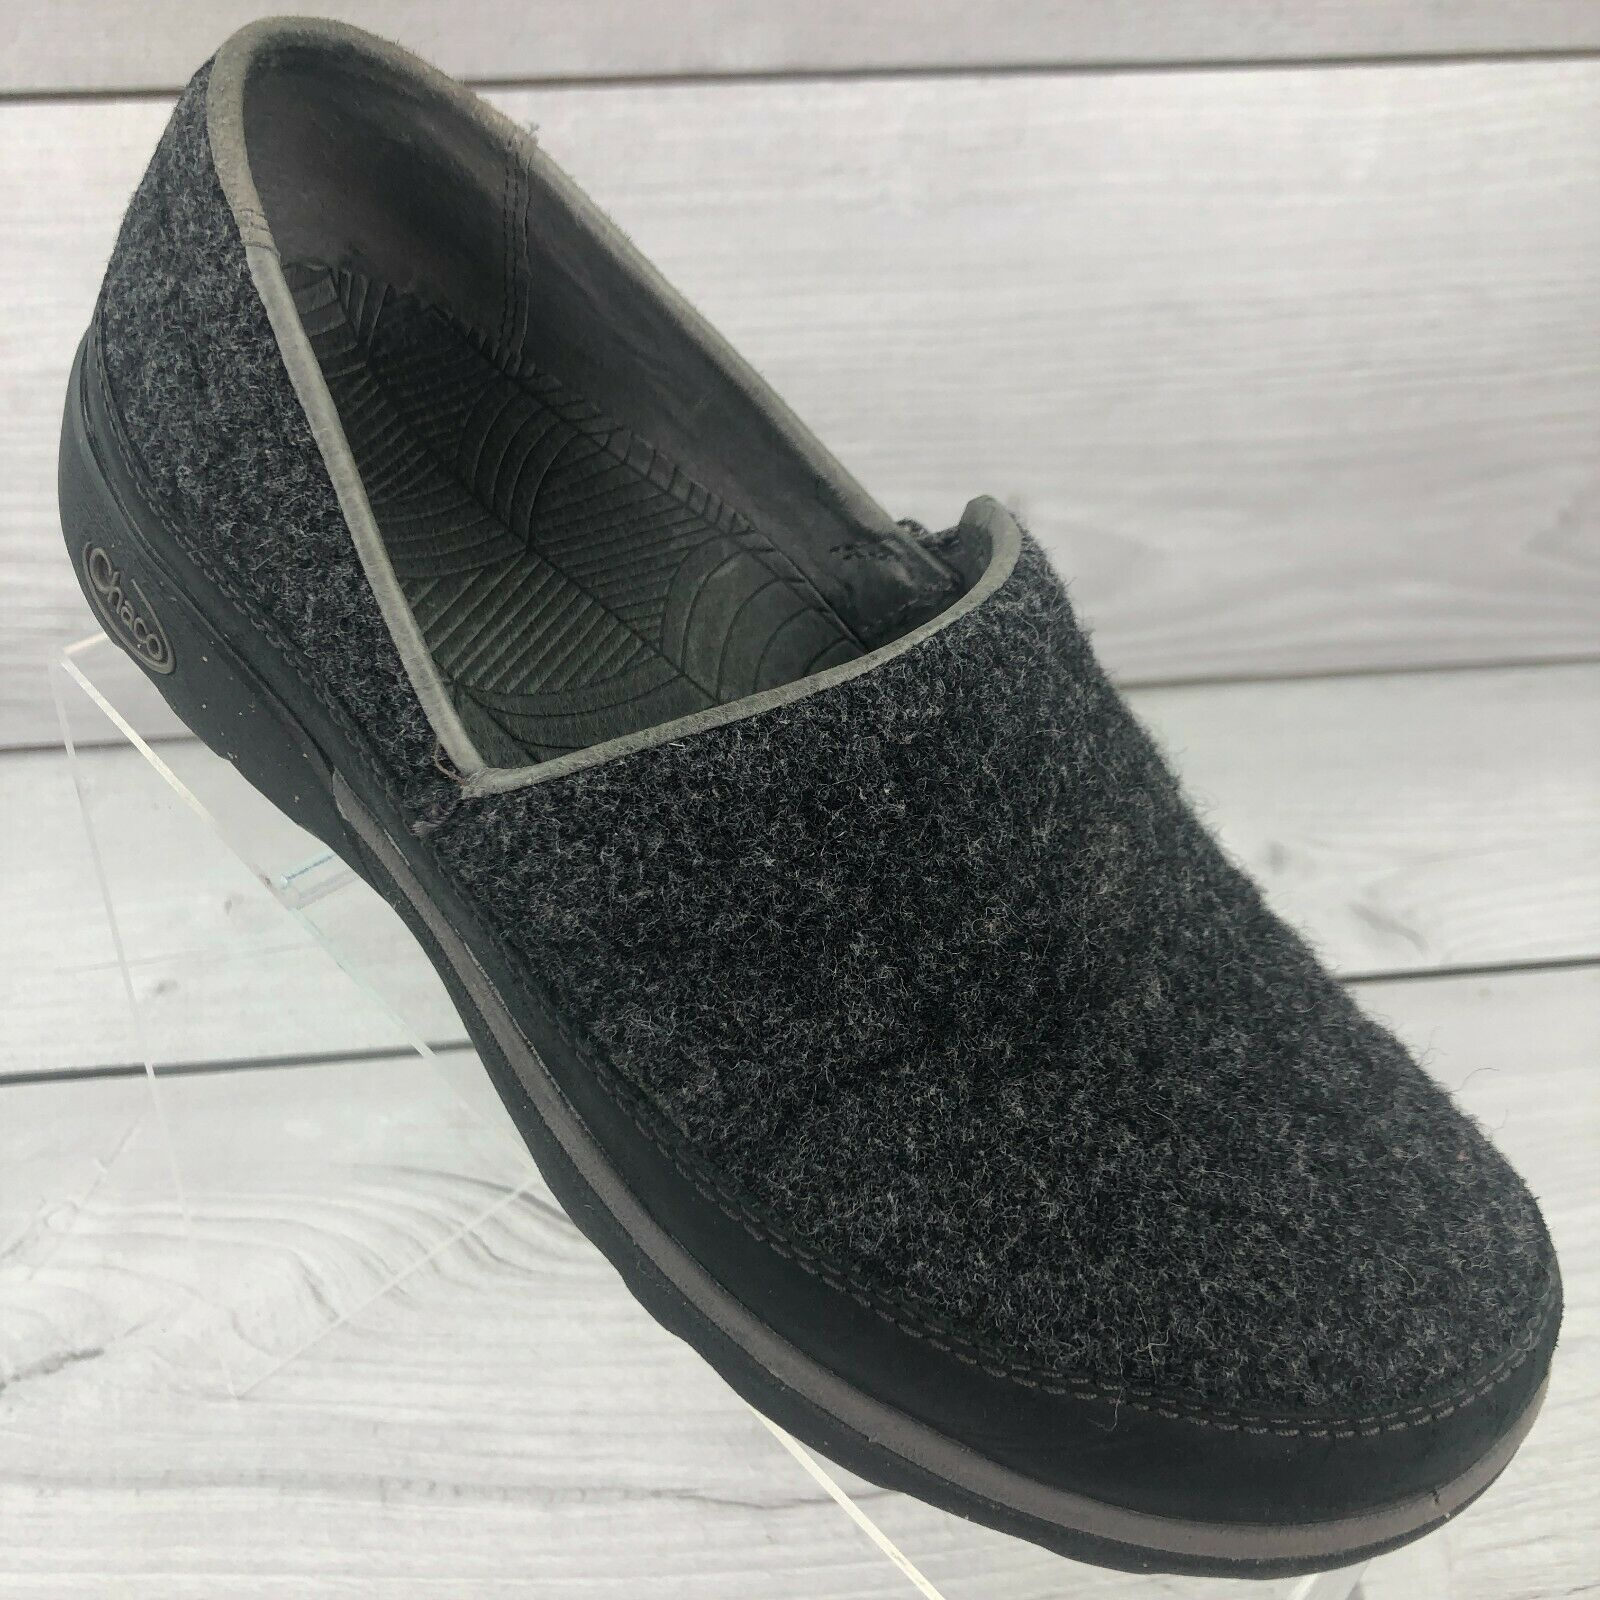 Chaco Black Sloan Wool Slip On Shoes Comfort Loafer Womens Size 7.5 J105806